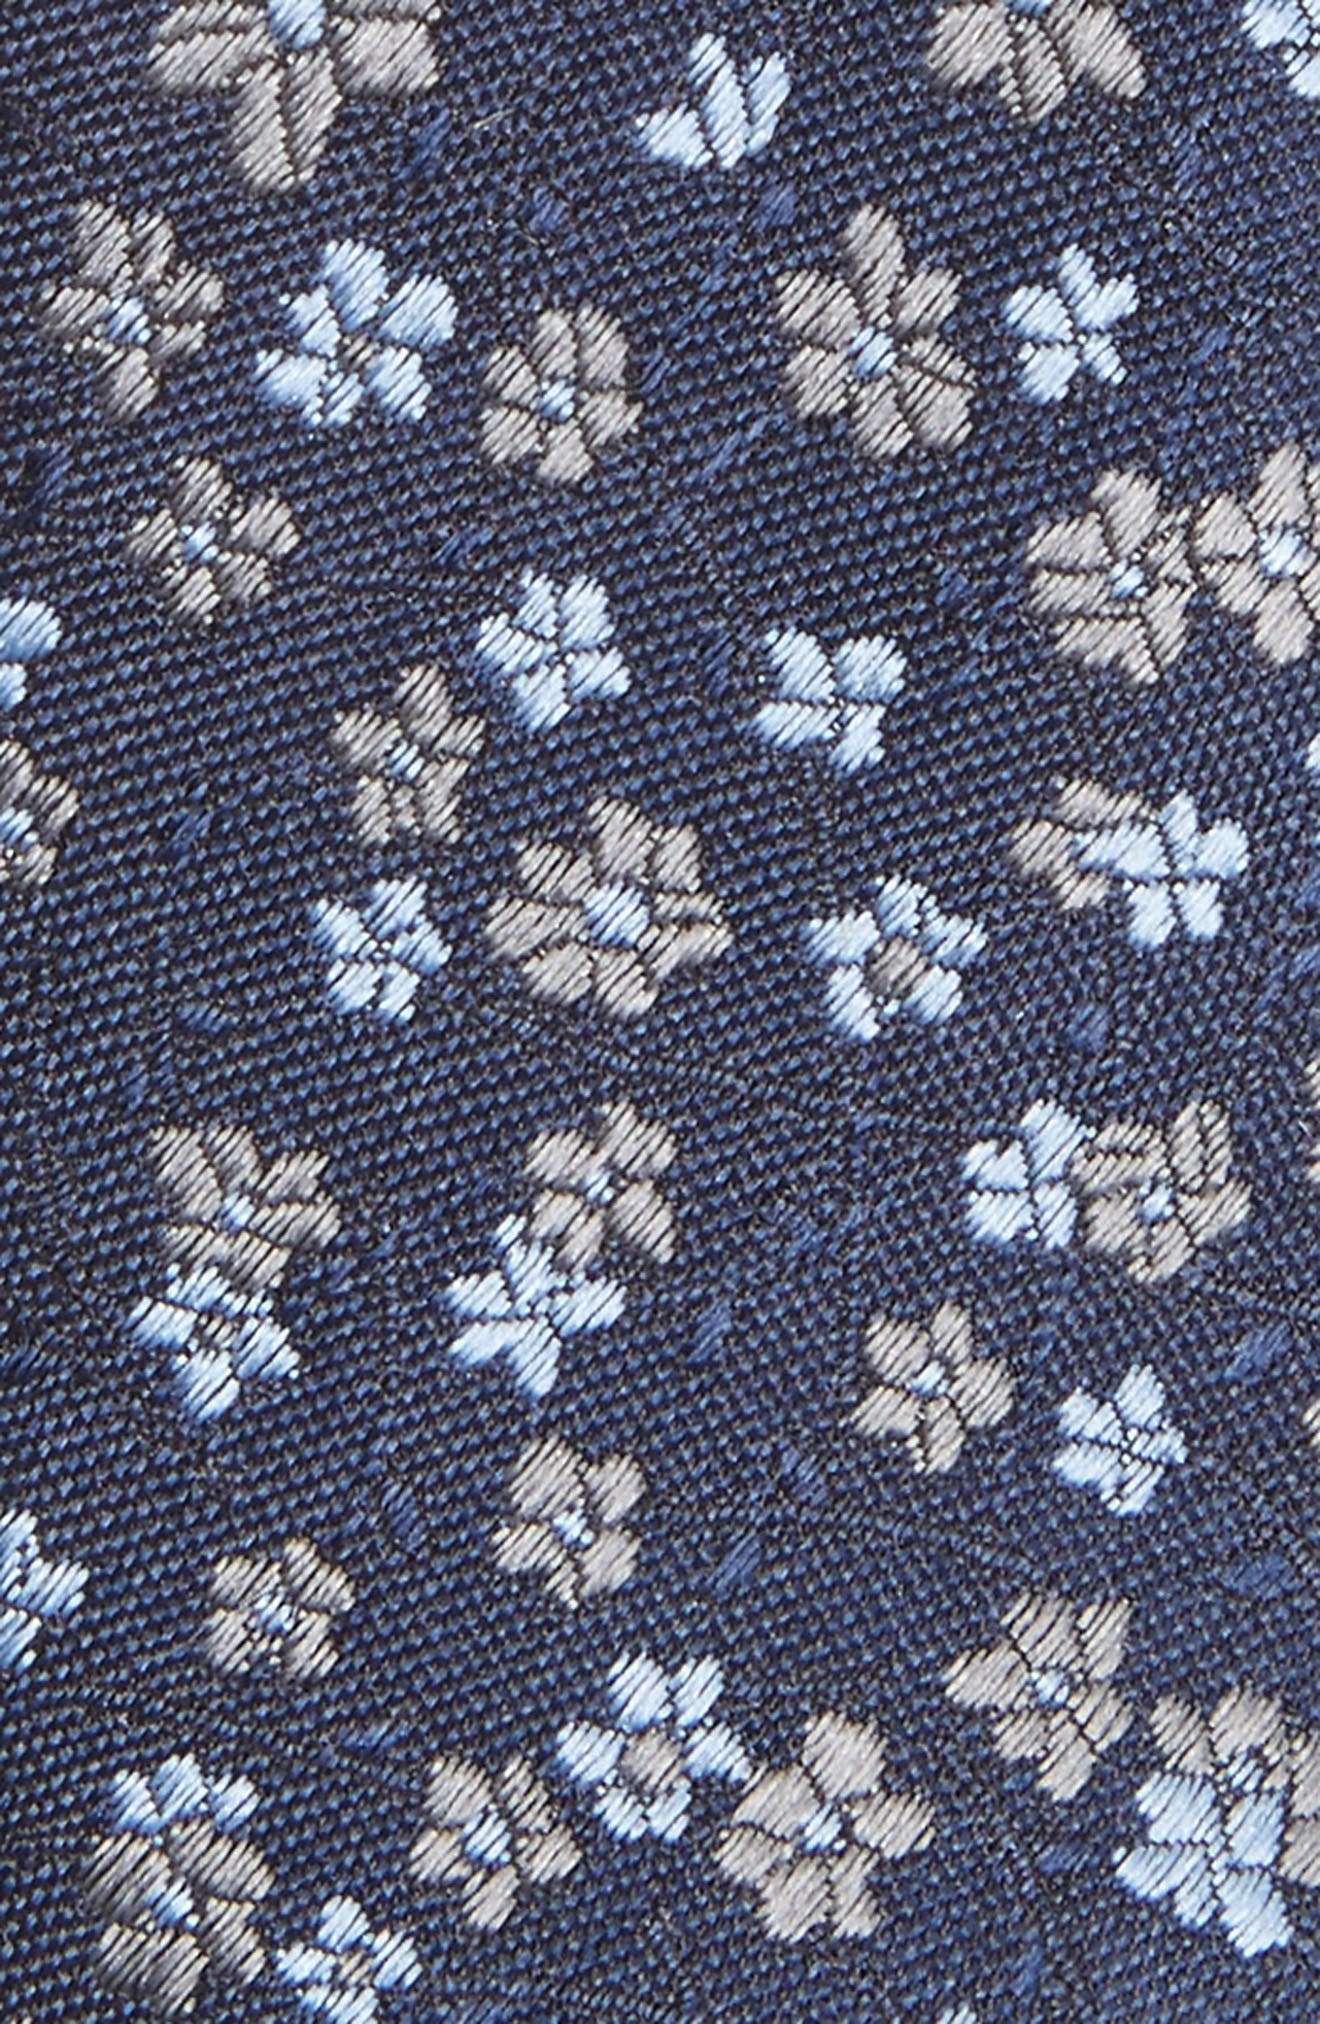 Alternate Image 2  - The Tie Bar Freefall Floral Silk Tie